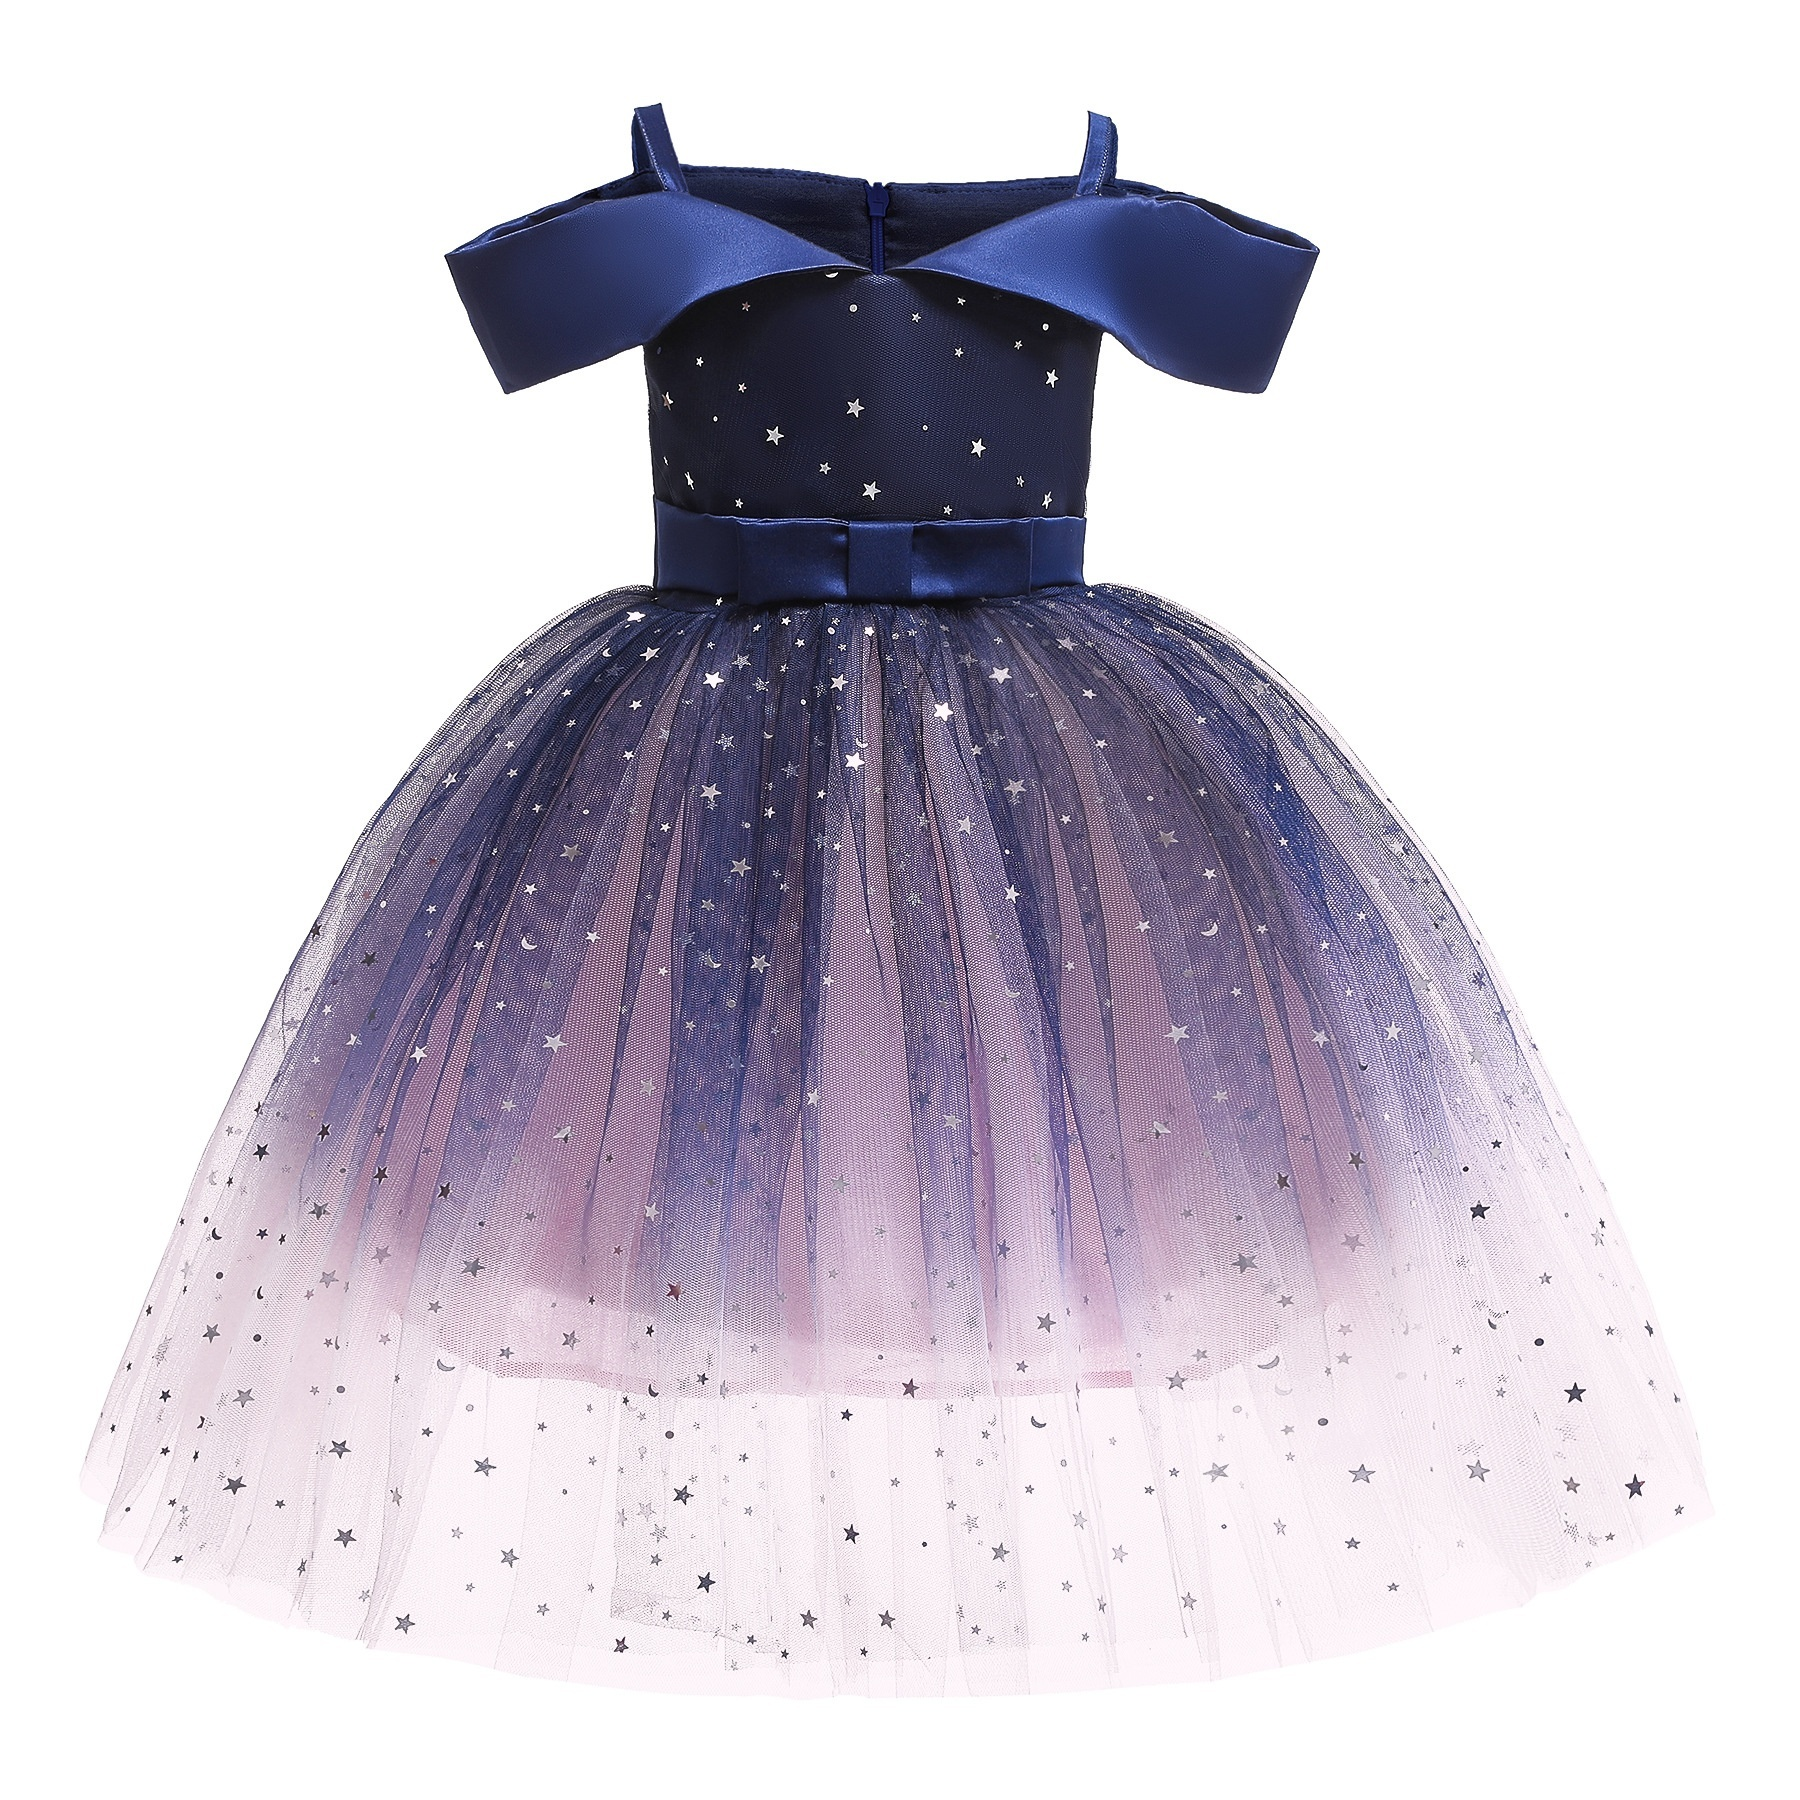 Girls Baby Clothes Wear 6 Baby Girl Pettiskirt Princess Dress Lace Girl  Wedding Embroidery Flower Princess Shine Tulle Birthday Party Dress